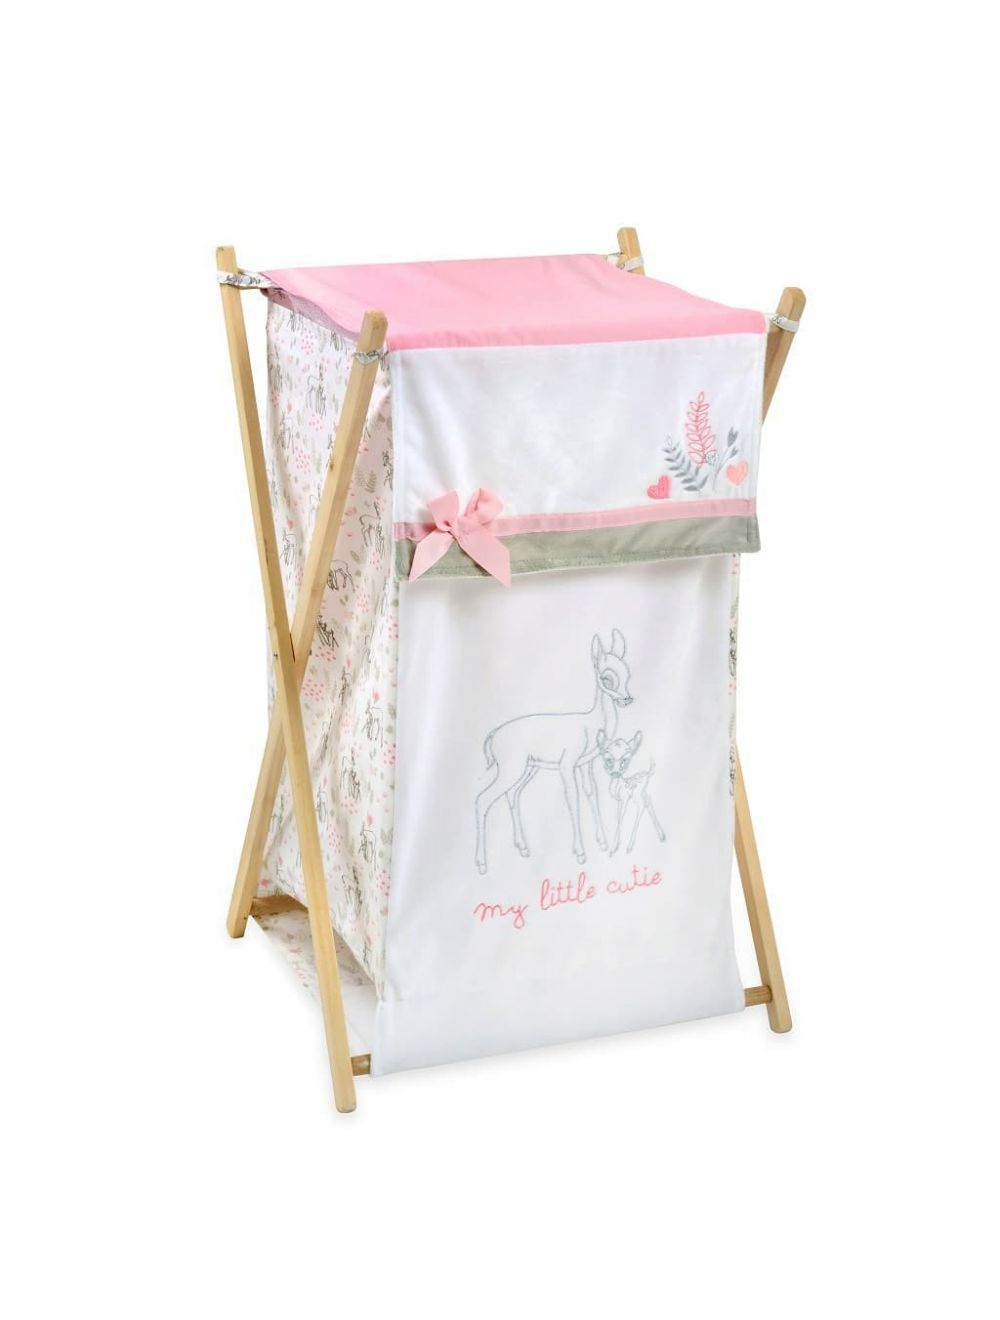 Pink Dearest Bambi Hamper Baby Clothes Organization Baby